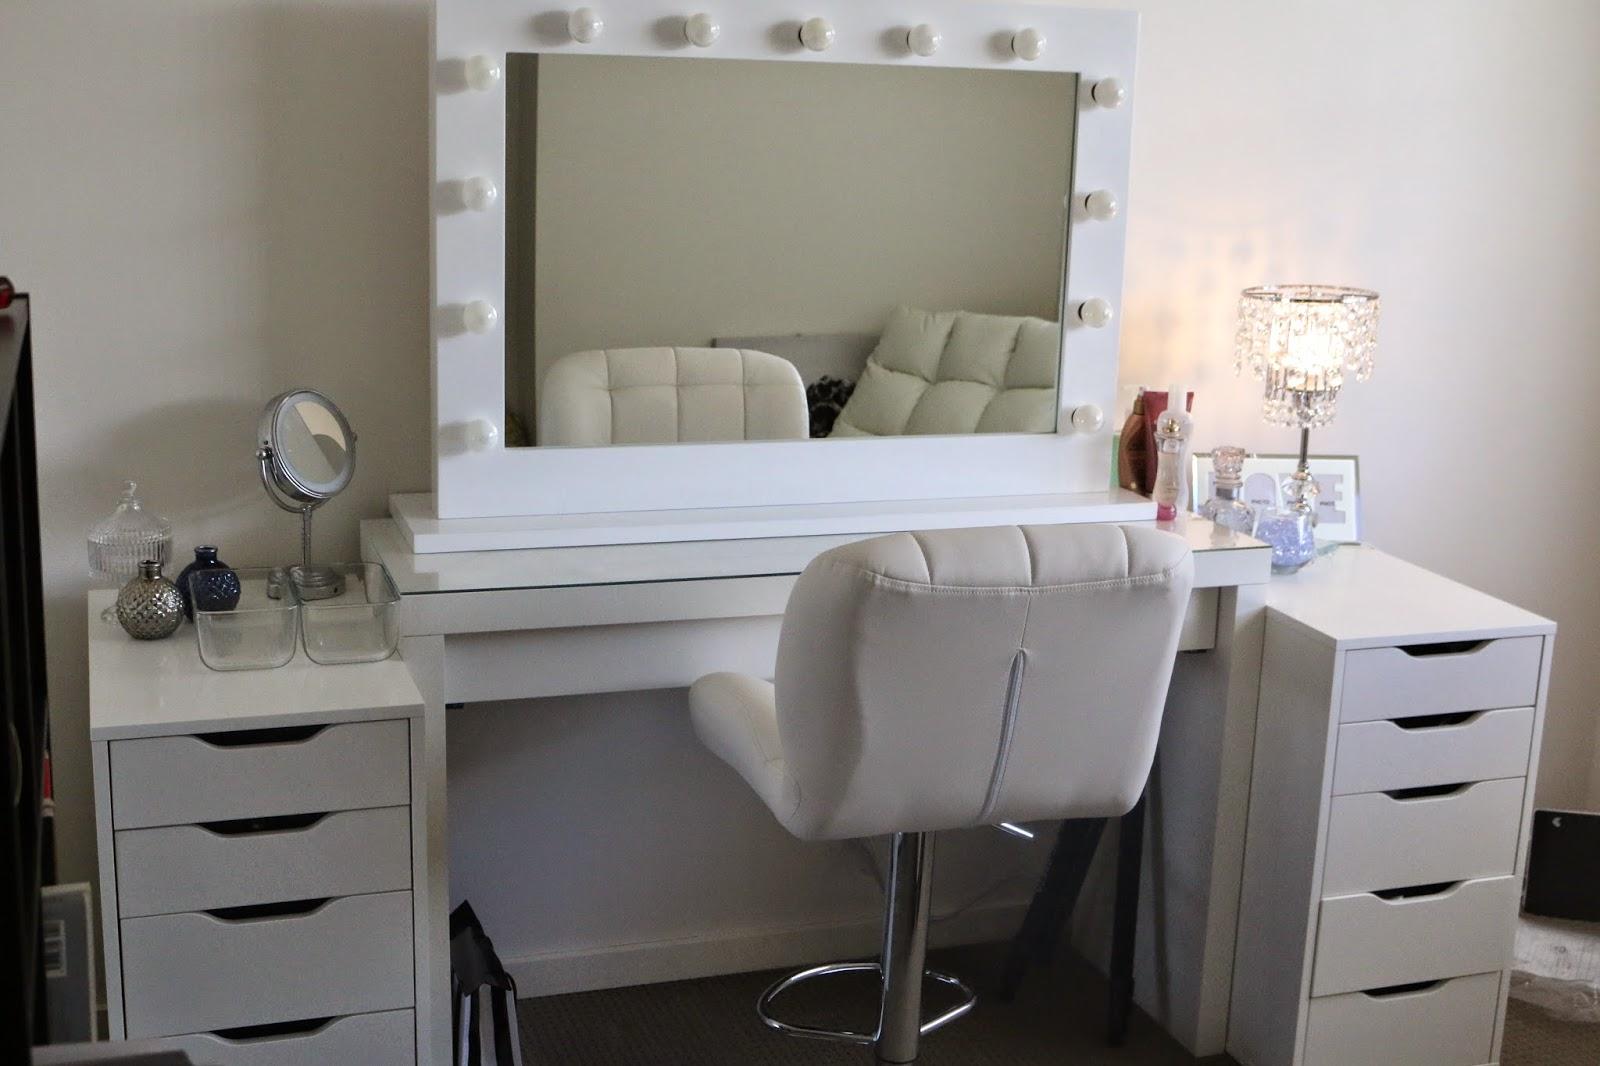 Furniture  Rug Fancy Makeup Vanity Table With Lighted Mirror For - Mirrored makeup vanity set